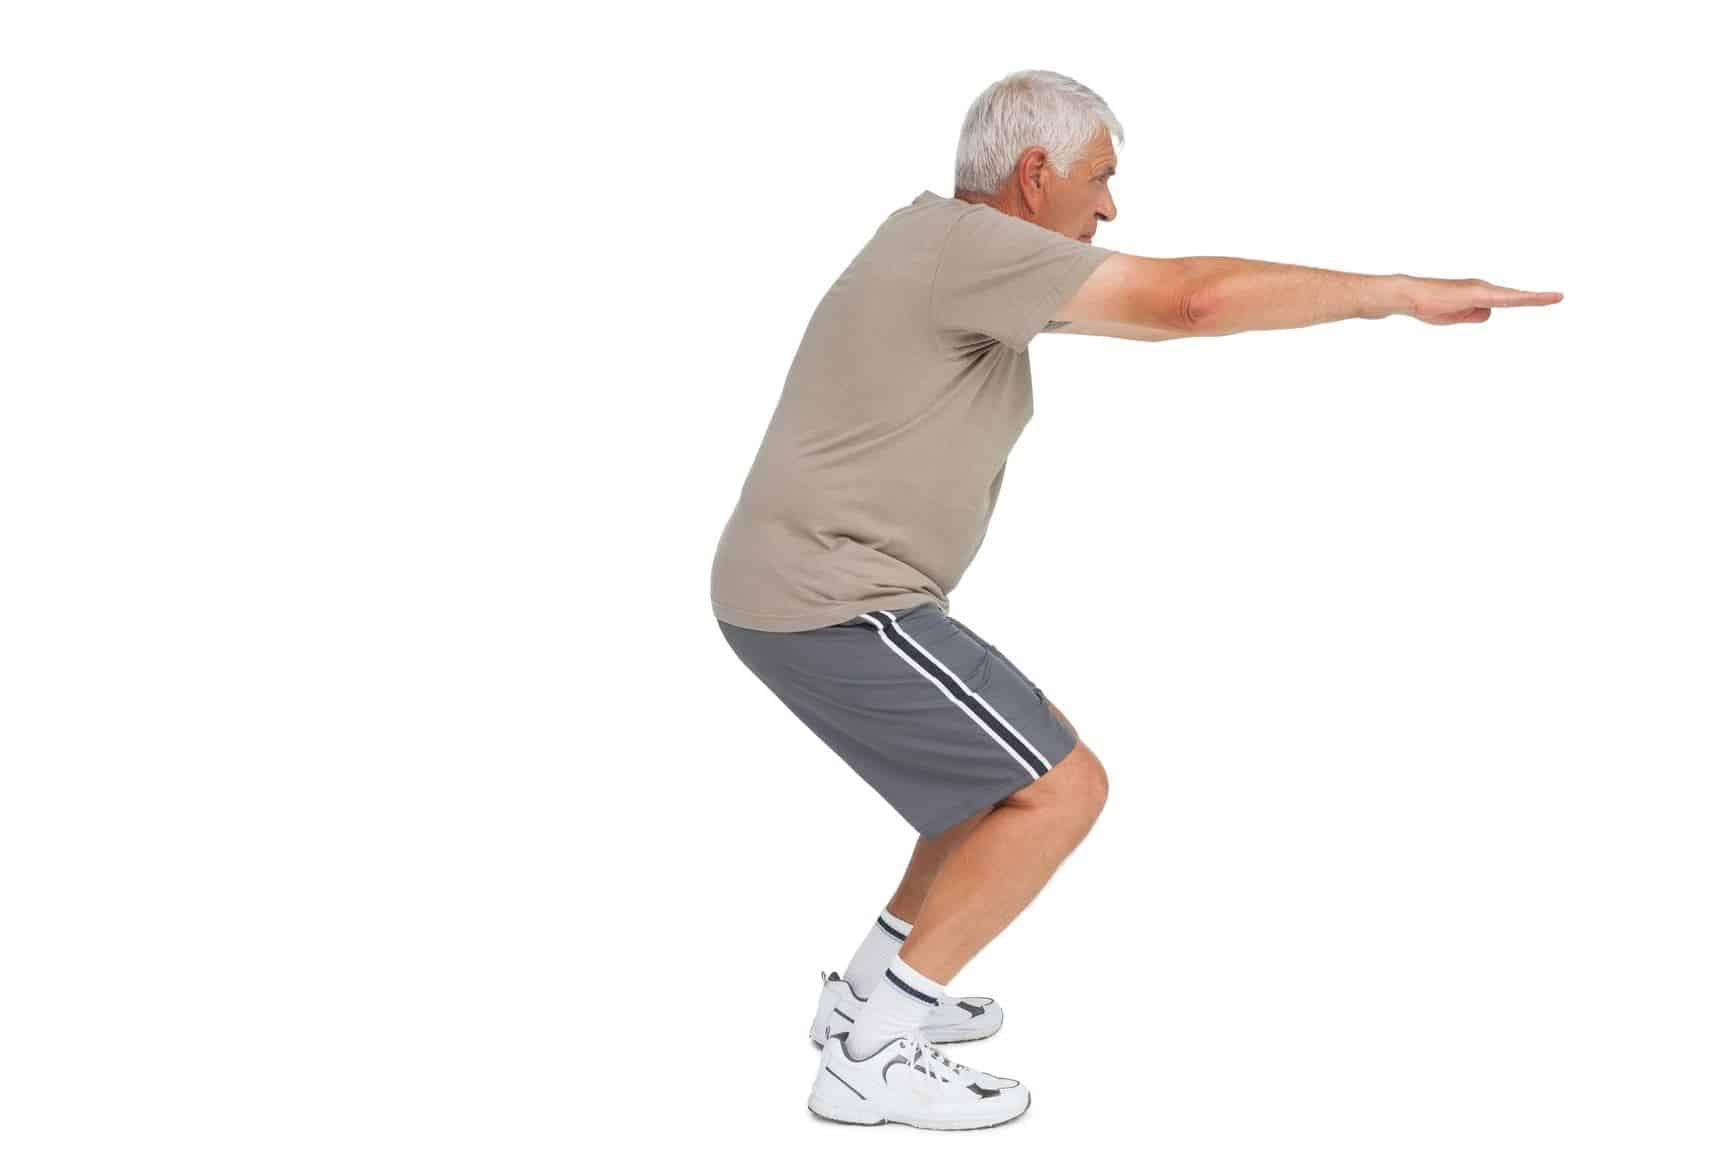 Balancing exercises for seniors